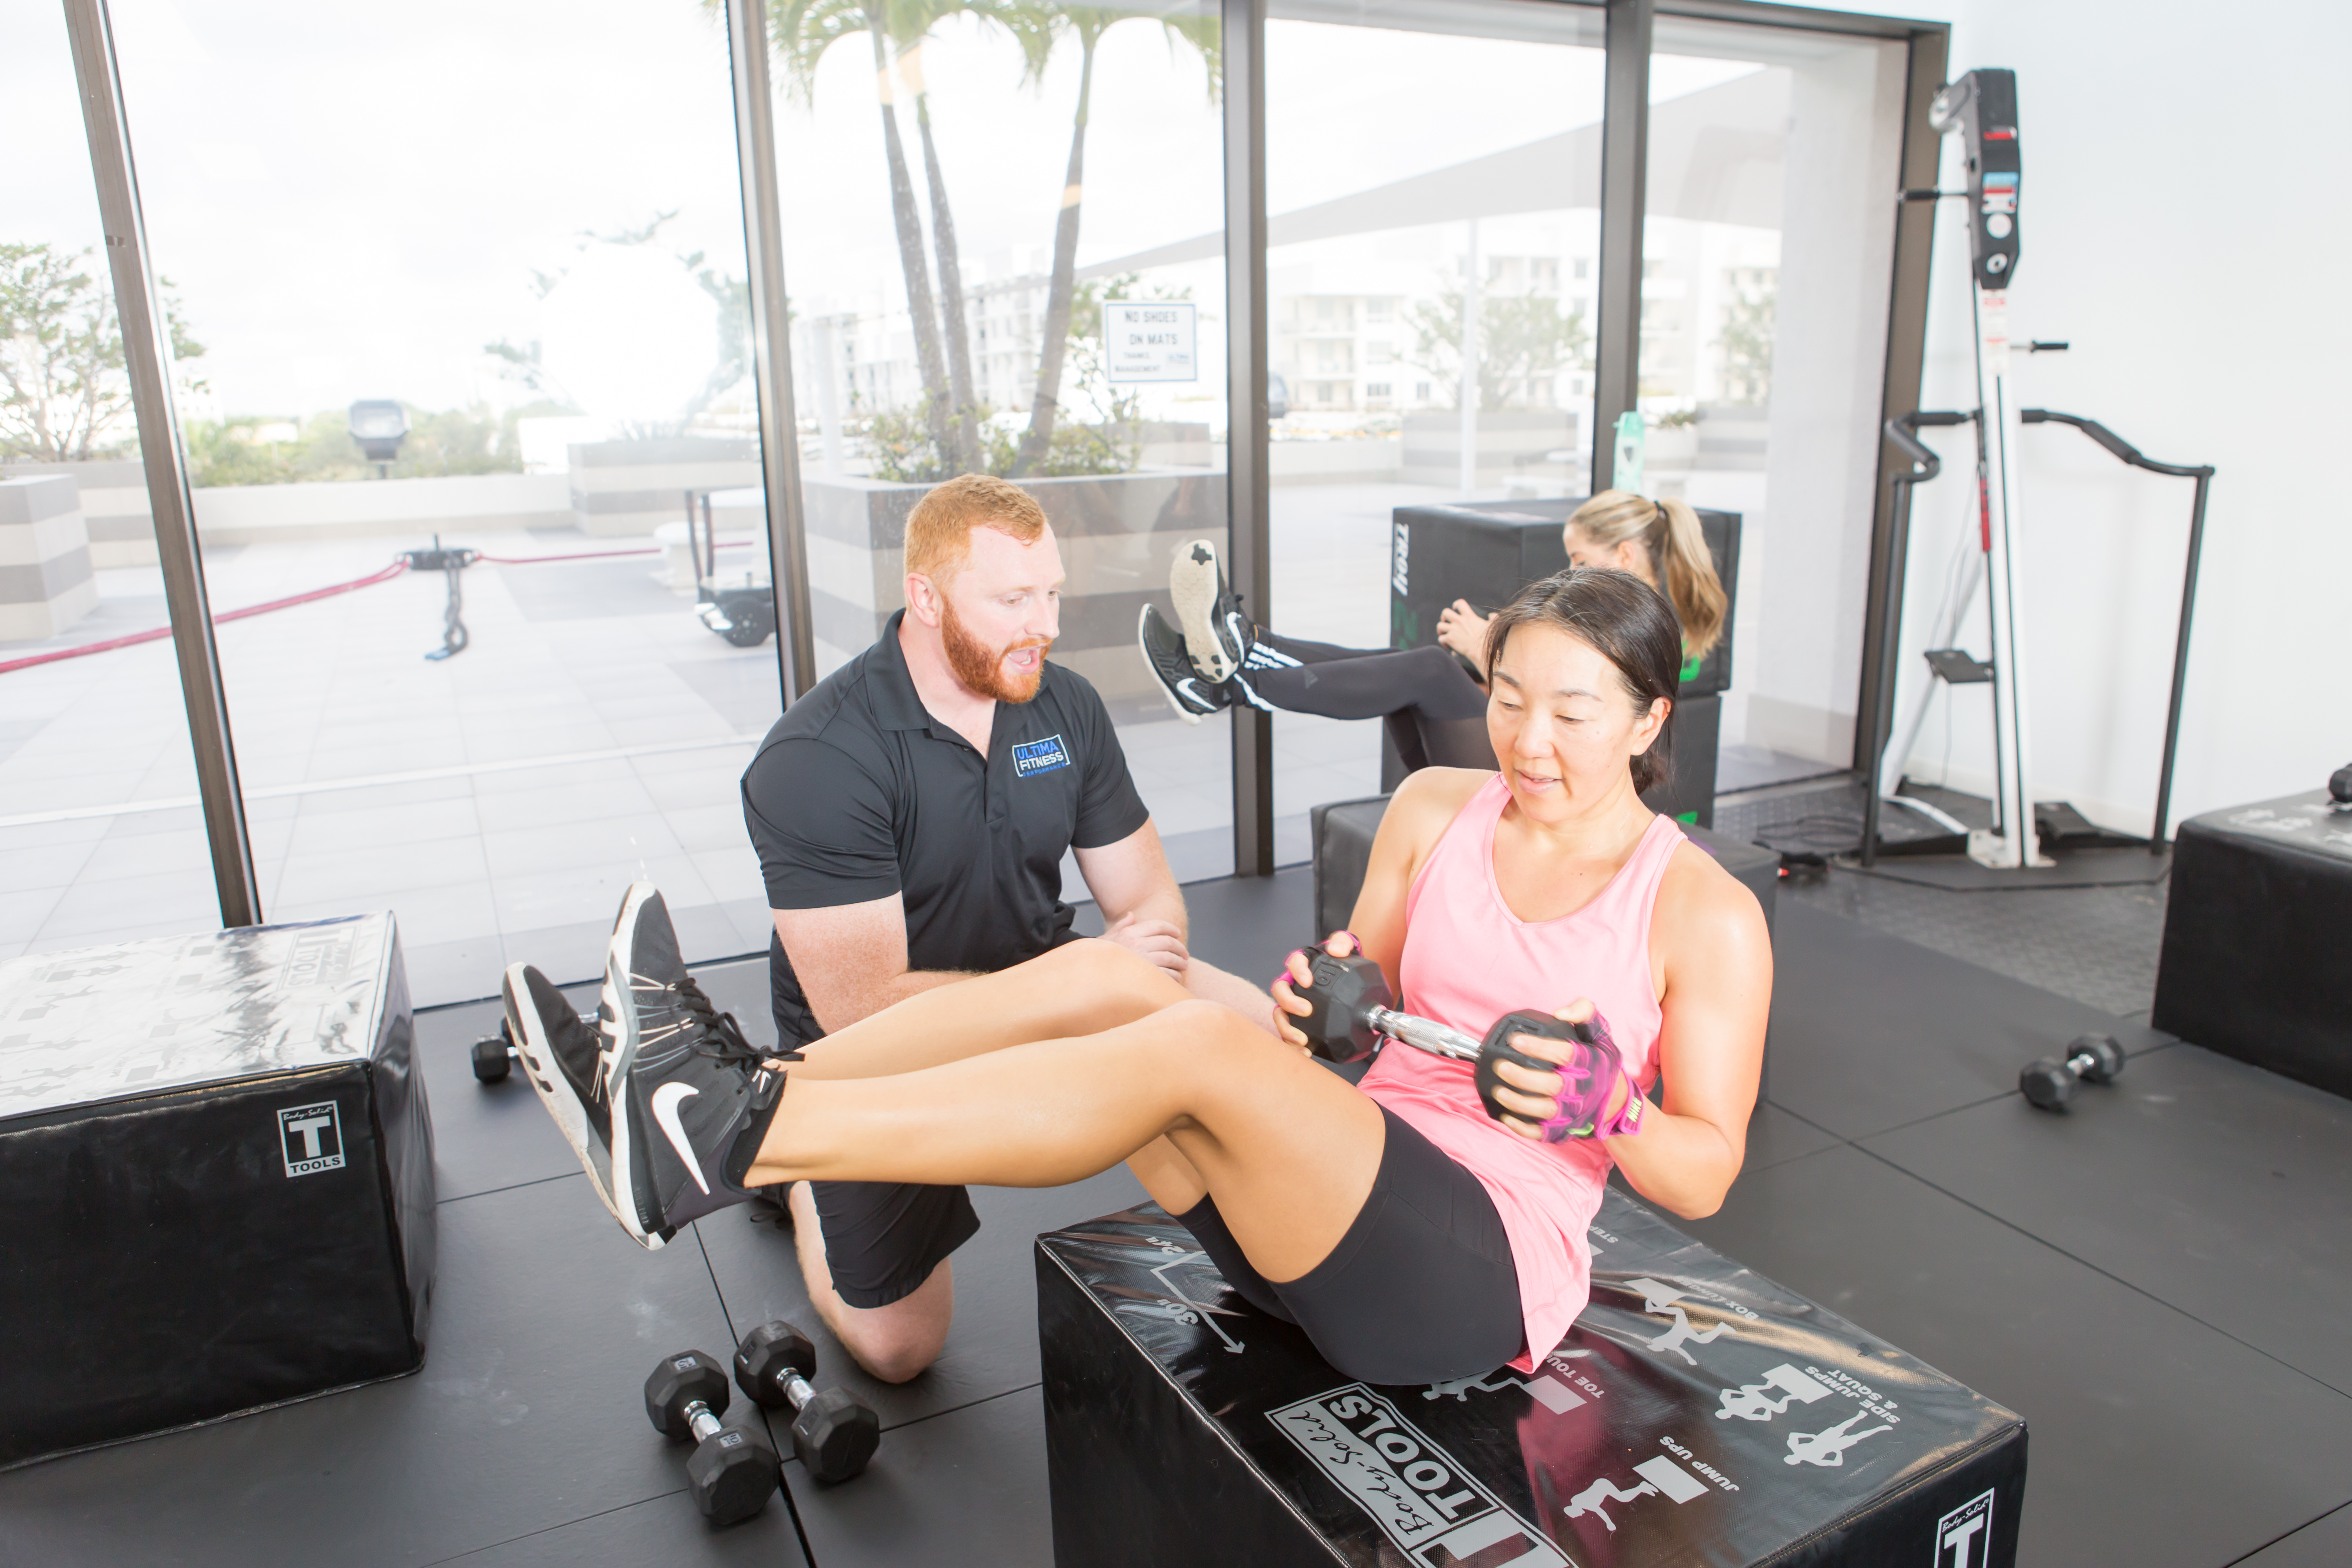 Where can I try kickboxing in west palm beach?